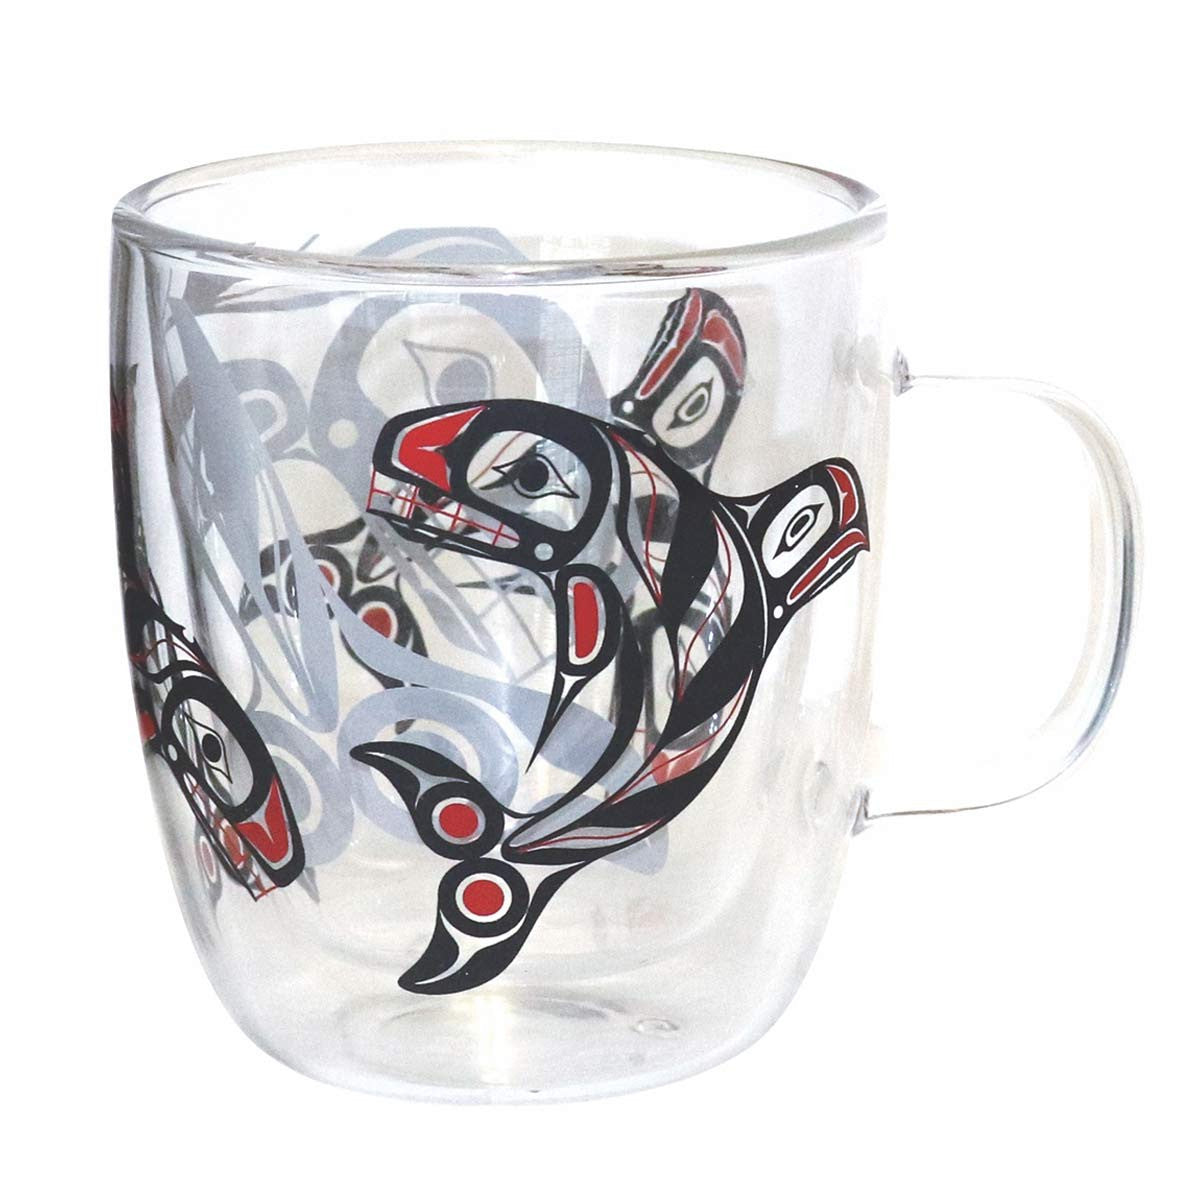 Double Walled Glass Mug- Raven Fin Killer Whale by Darrel Amos